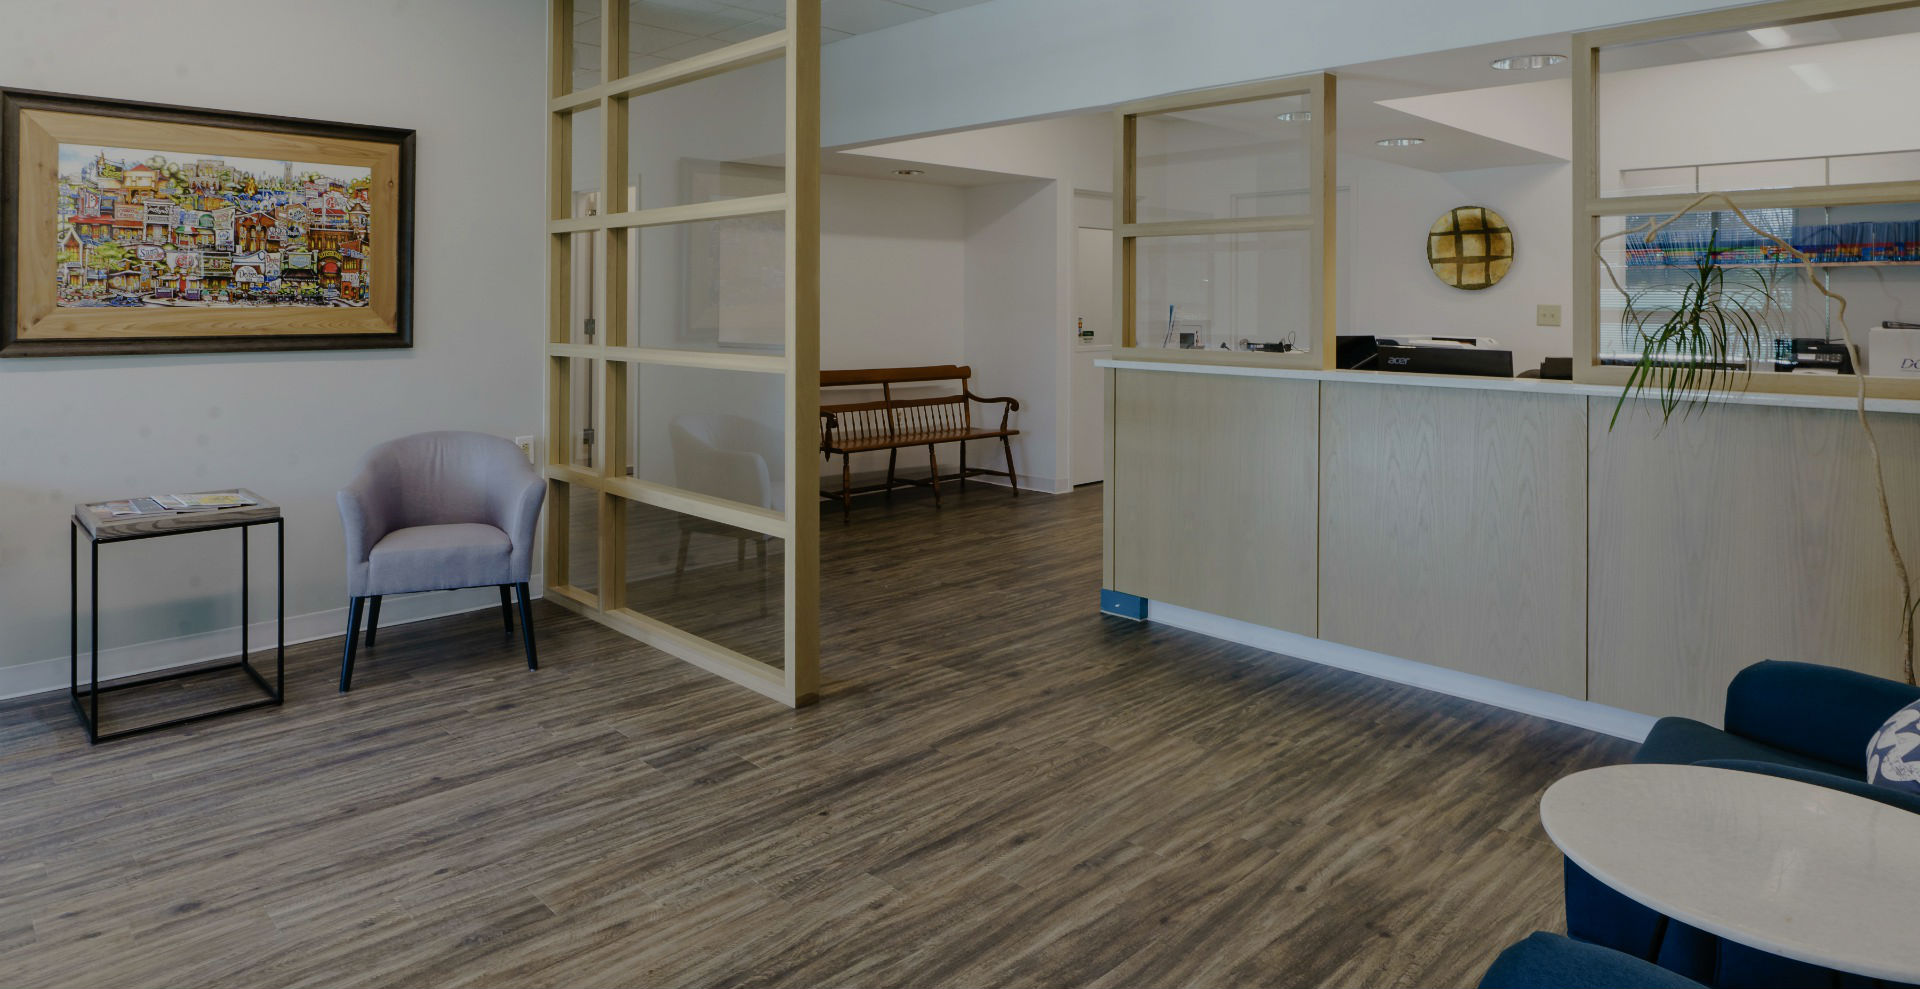 Lobby and waiting area at Durham DDS